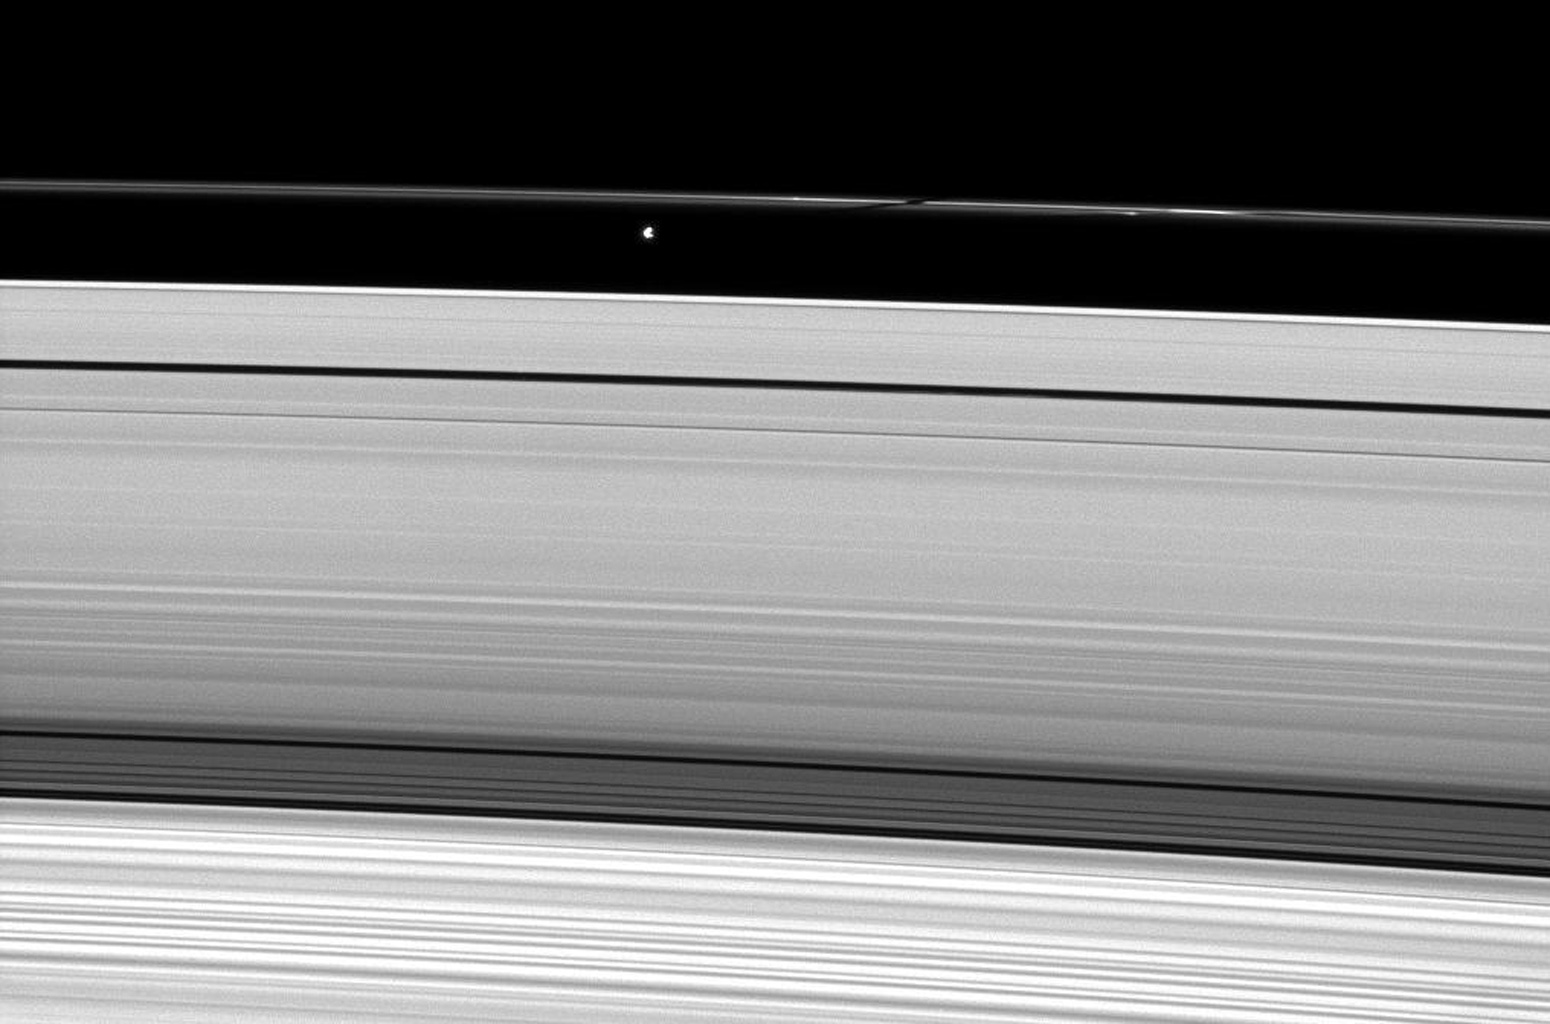 Saturn's moon Prometheus casts a shadow on the narrow F ring in this image captured by NASA's Cassini Orbiter weeks after the planet's August 2009 equinox.